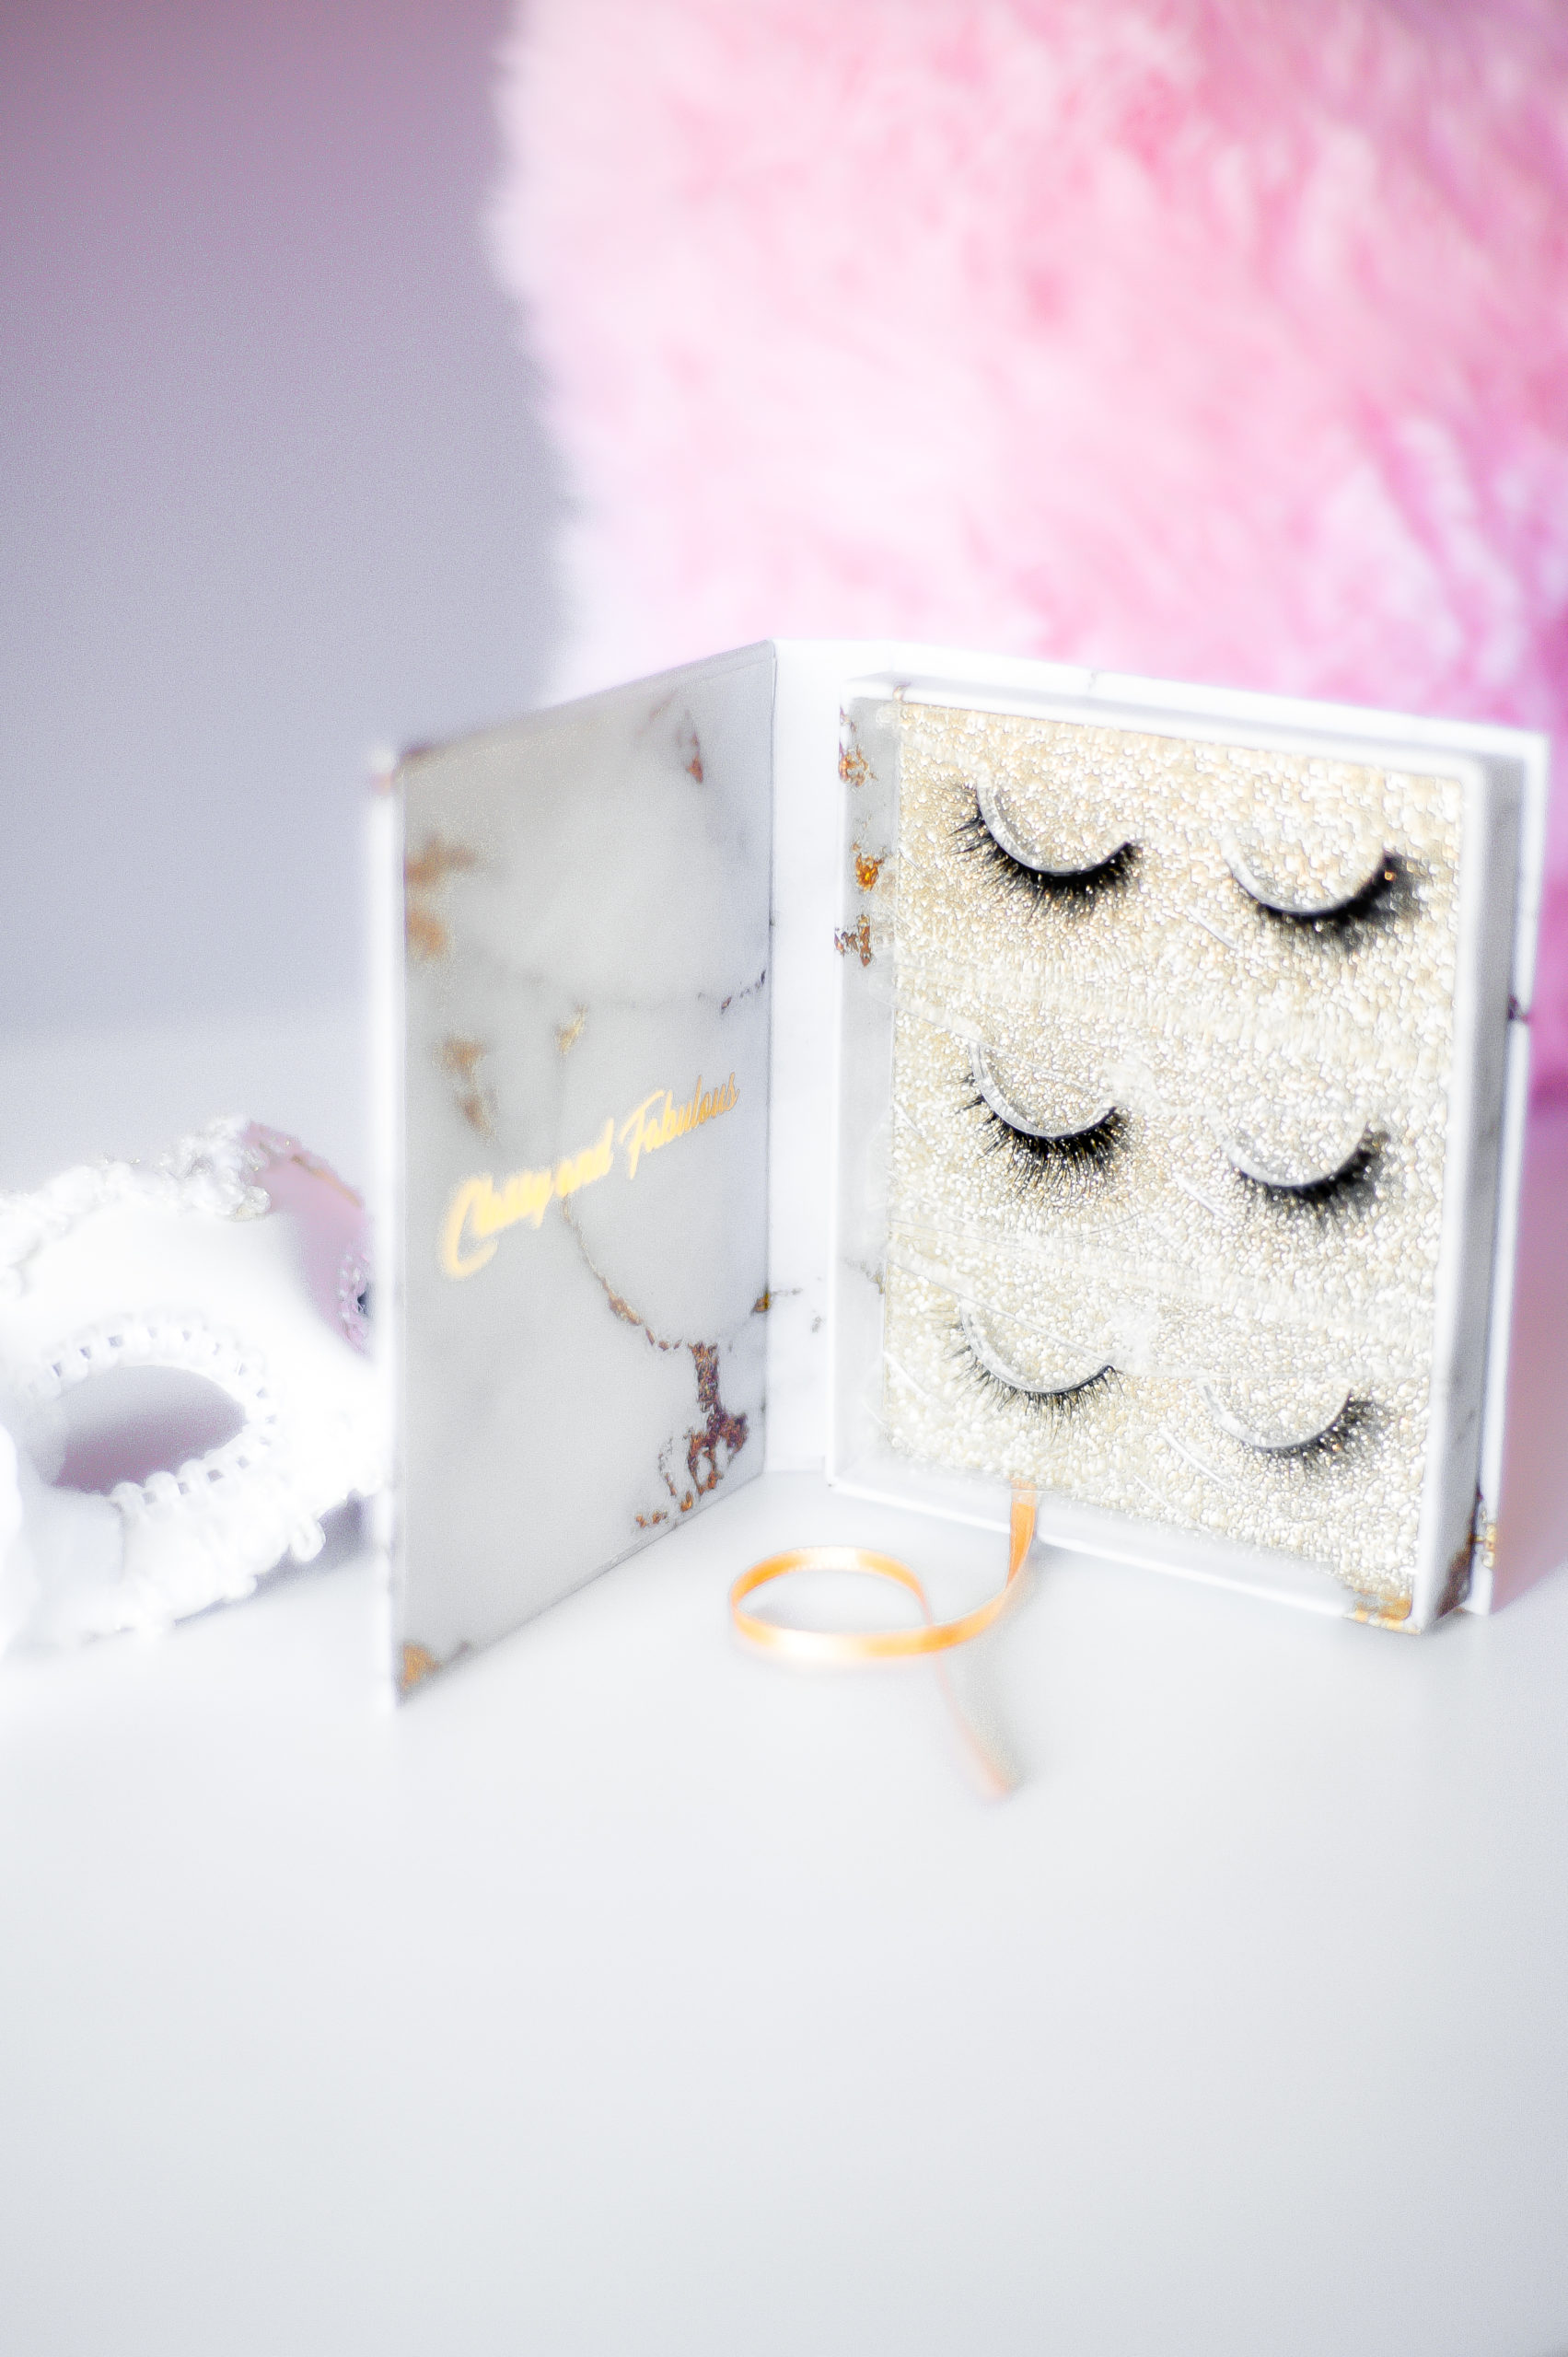 Toronto New York Los Angeles Magnetic Mink Eyelashes Luxurious Top Best Lashes Falsies No Glue Buy Now Near Me